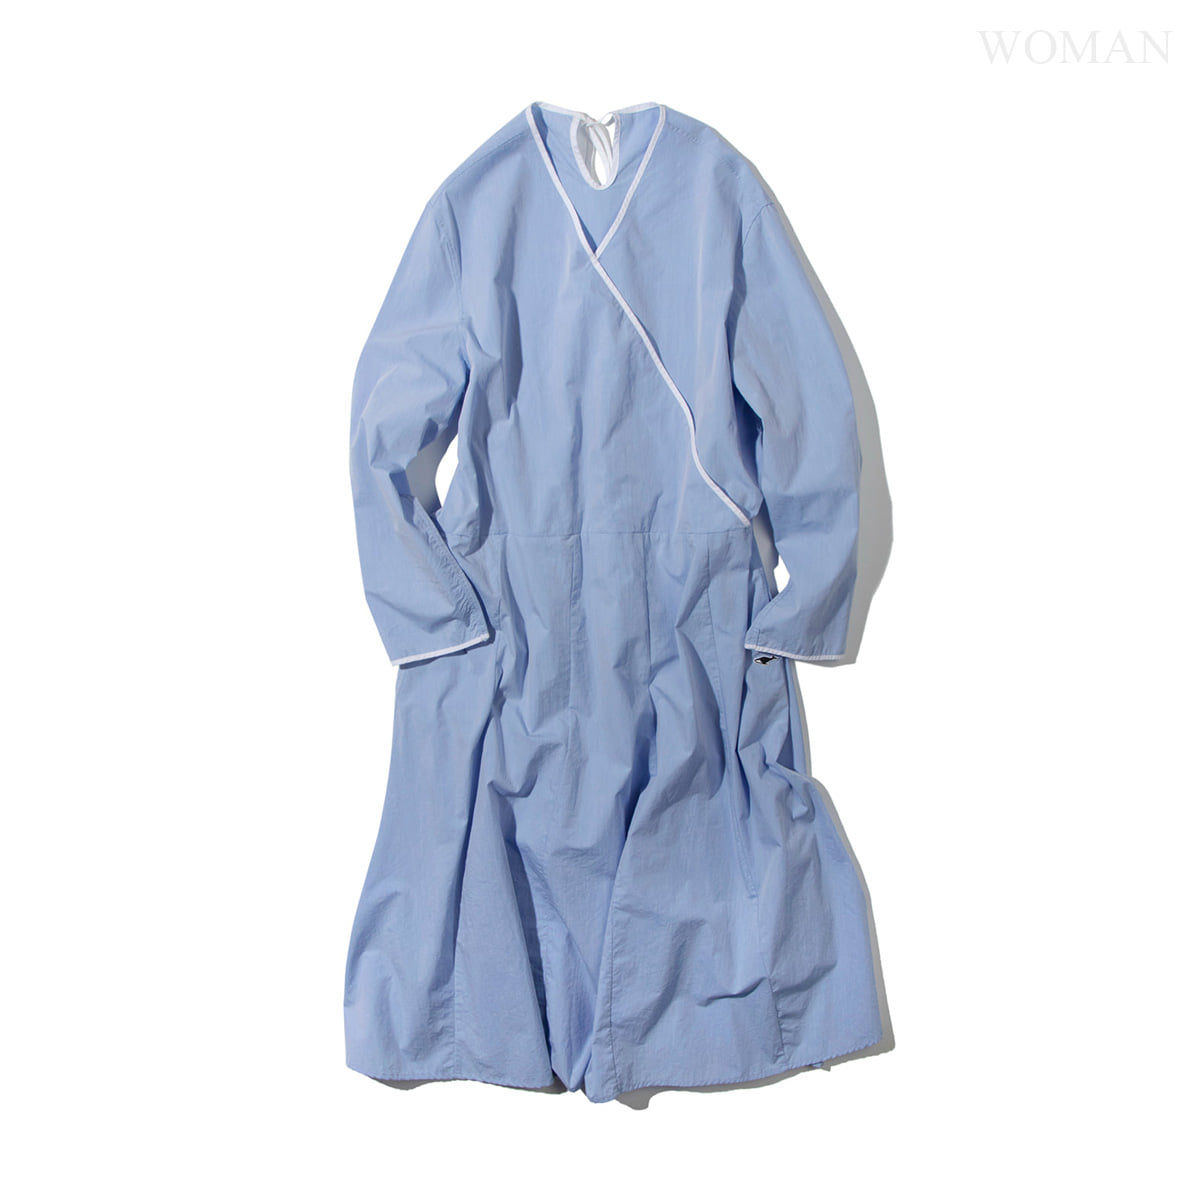 [NEITHERS] 253A-2 MEDICAL ONEPIECE 'SKY BLUE'